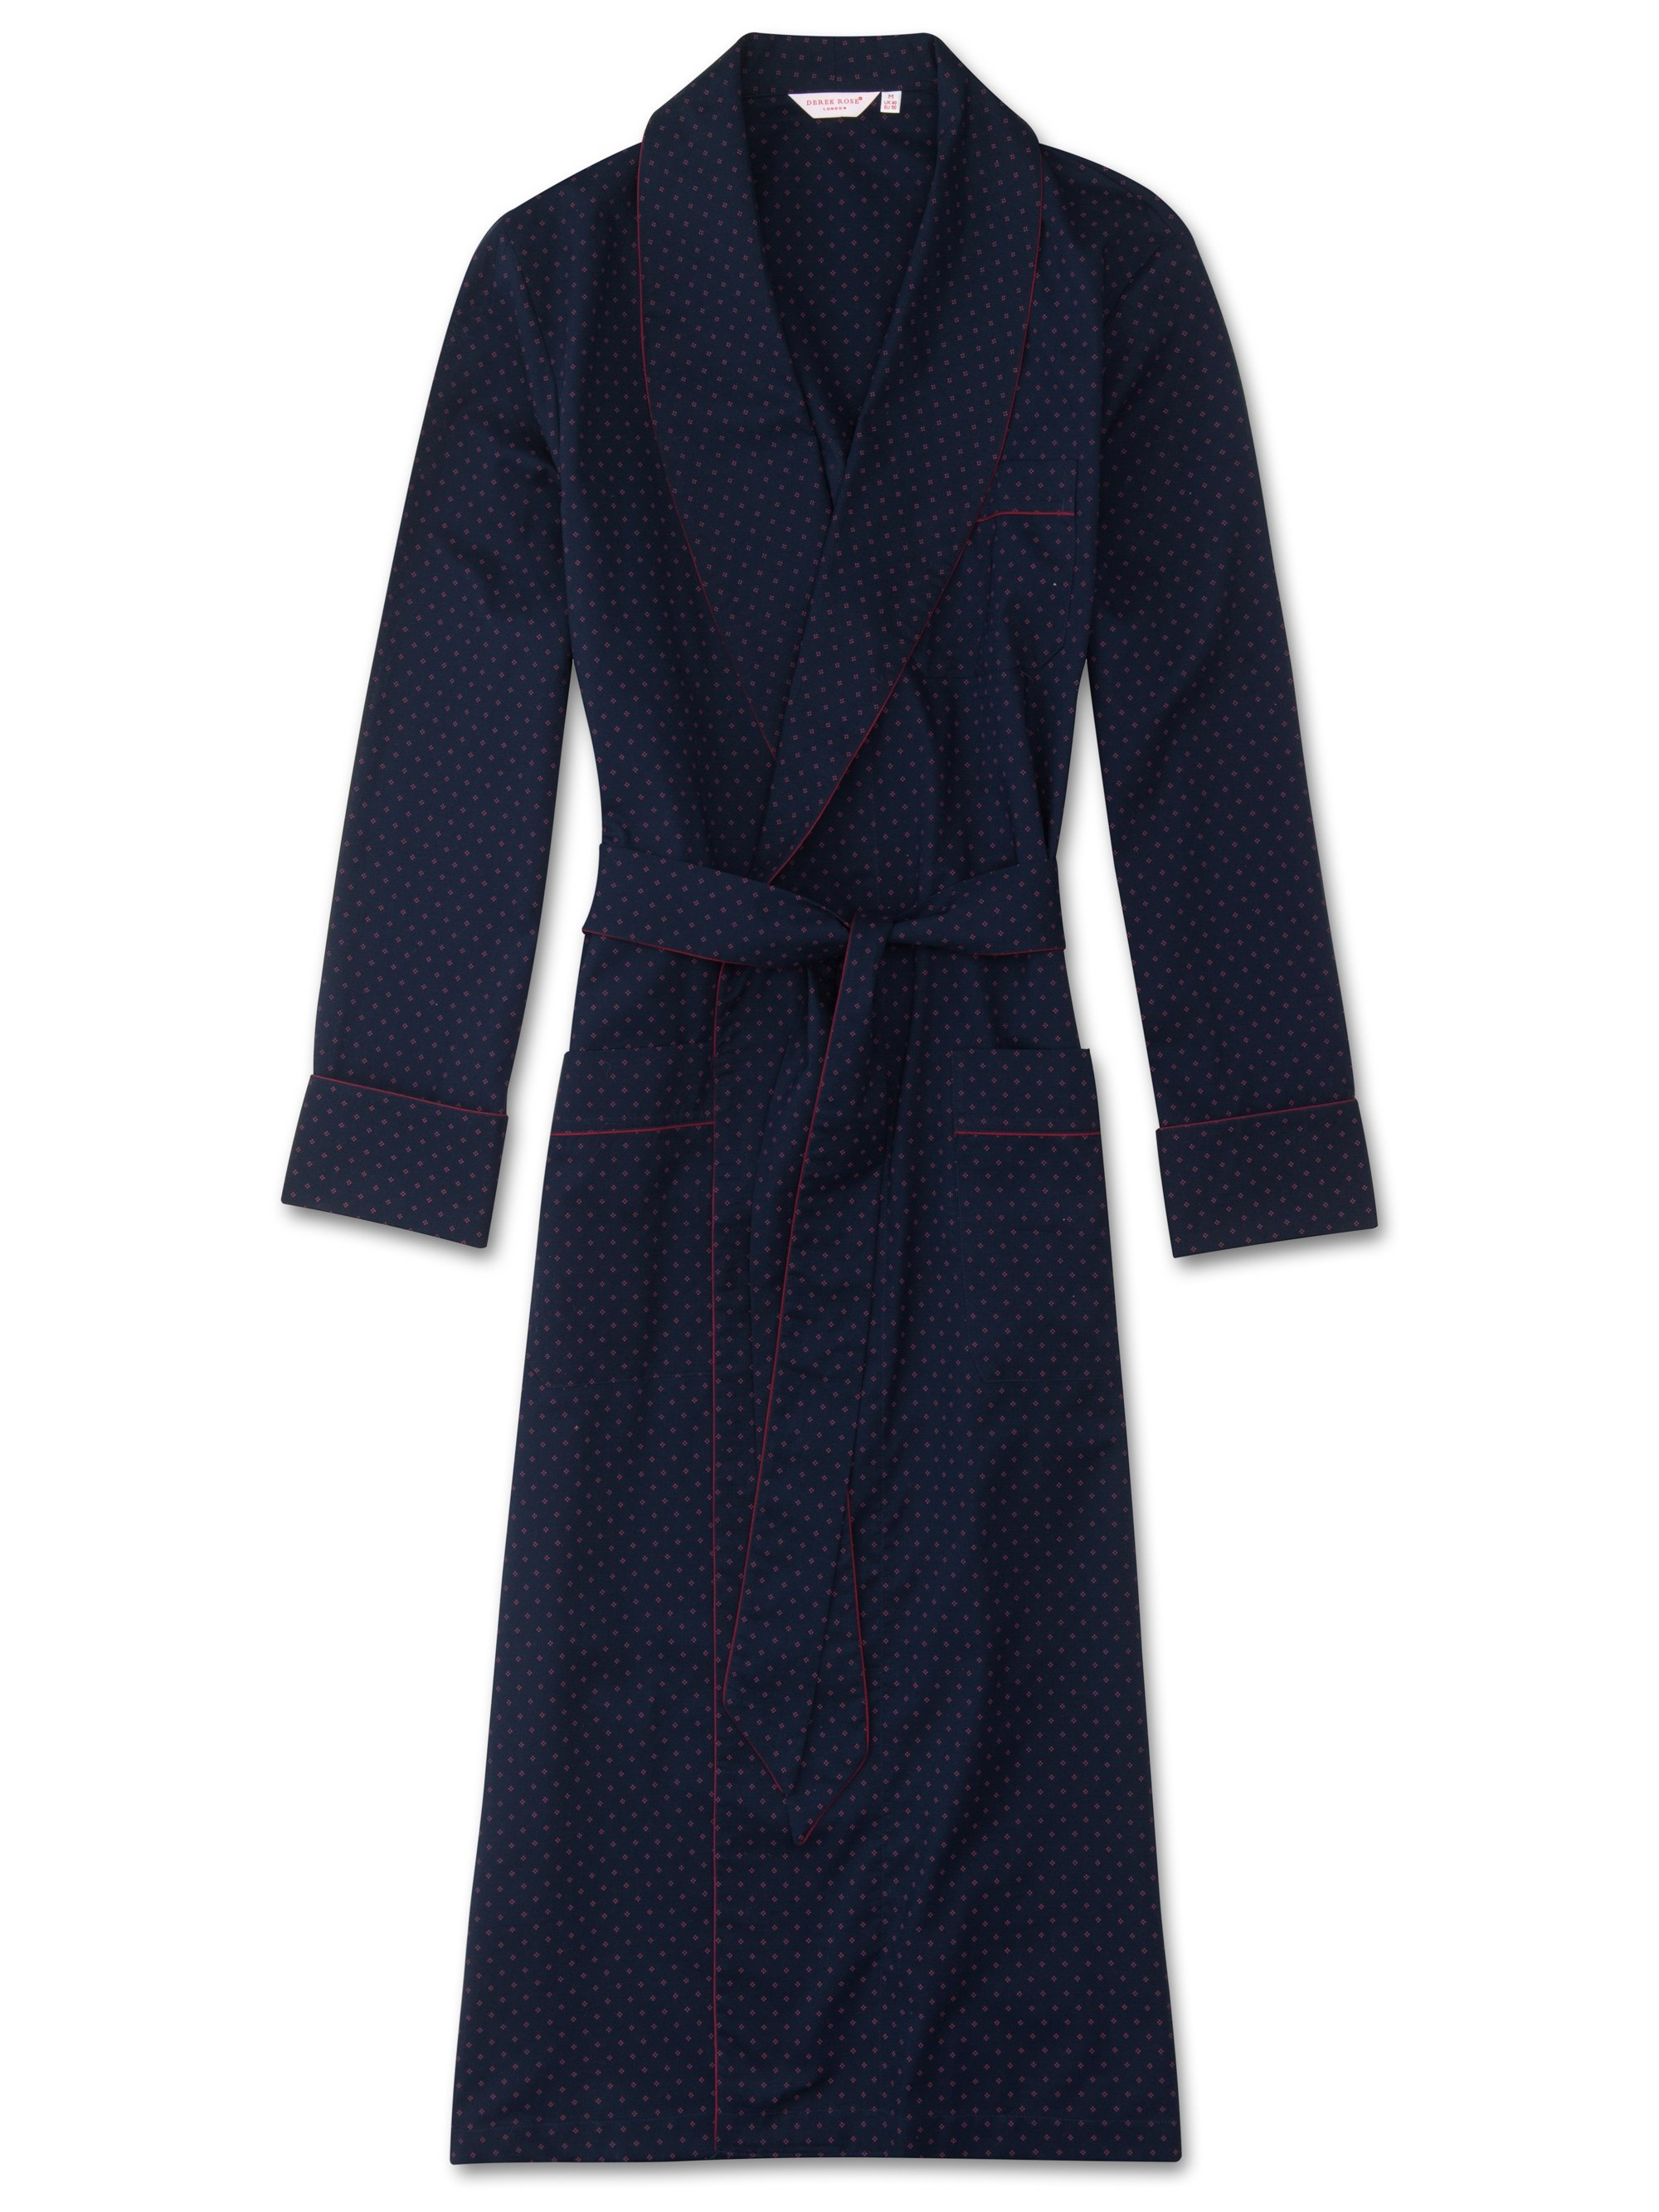 Men's Piped Dressing Gown Nelson 21 Cotton Batiste Red